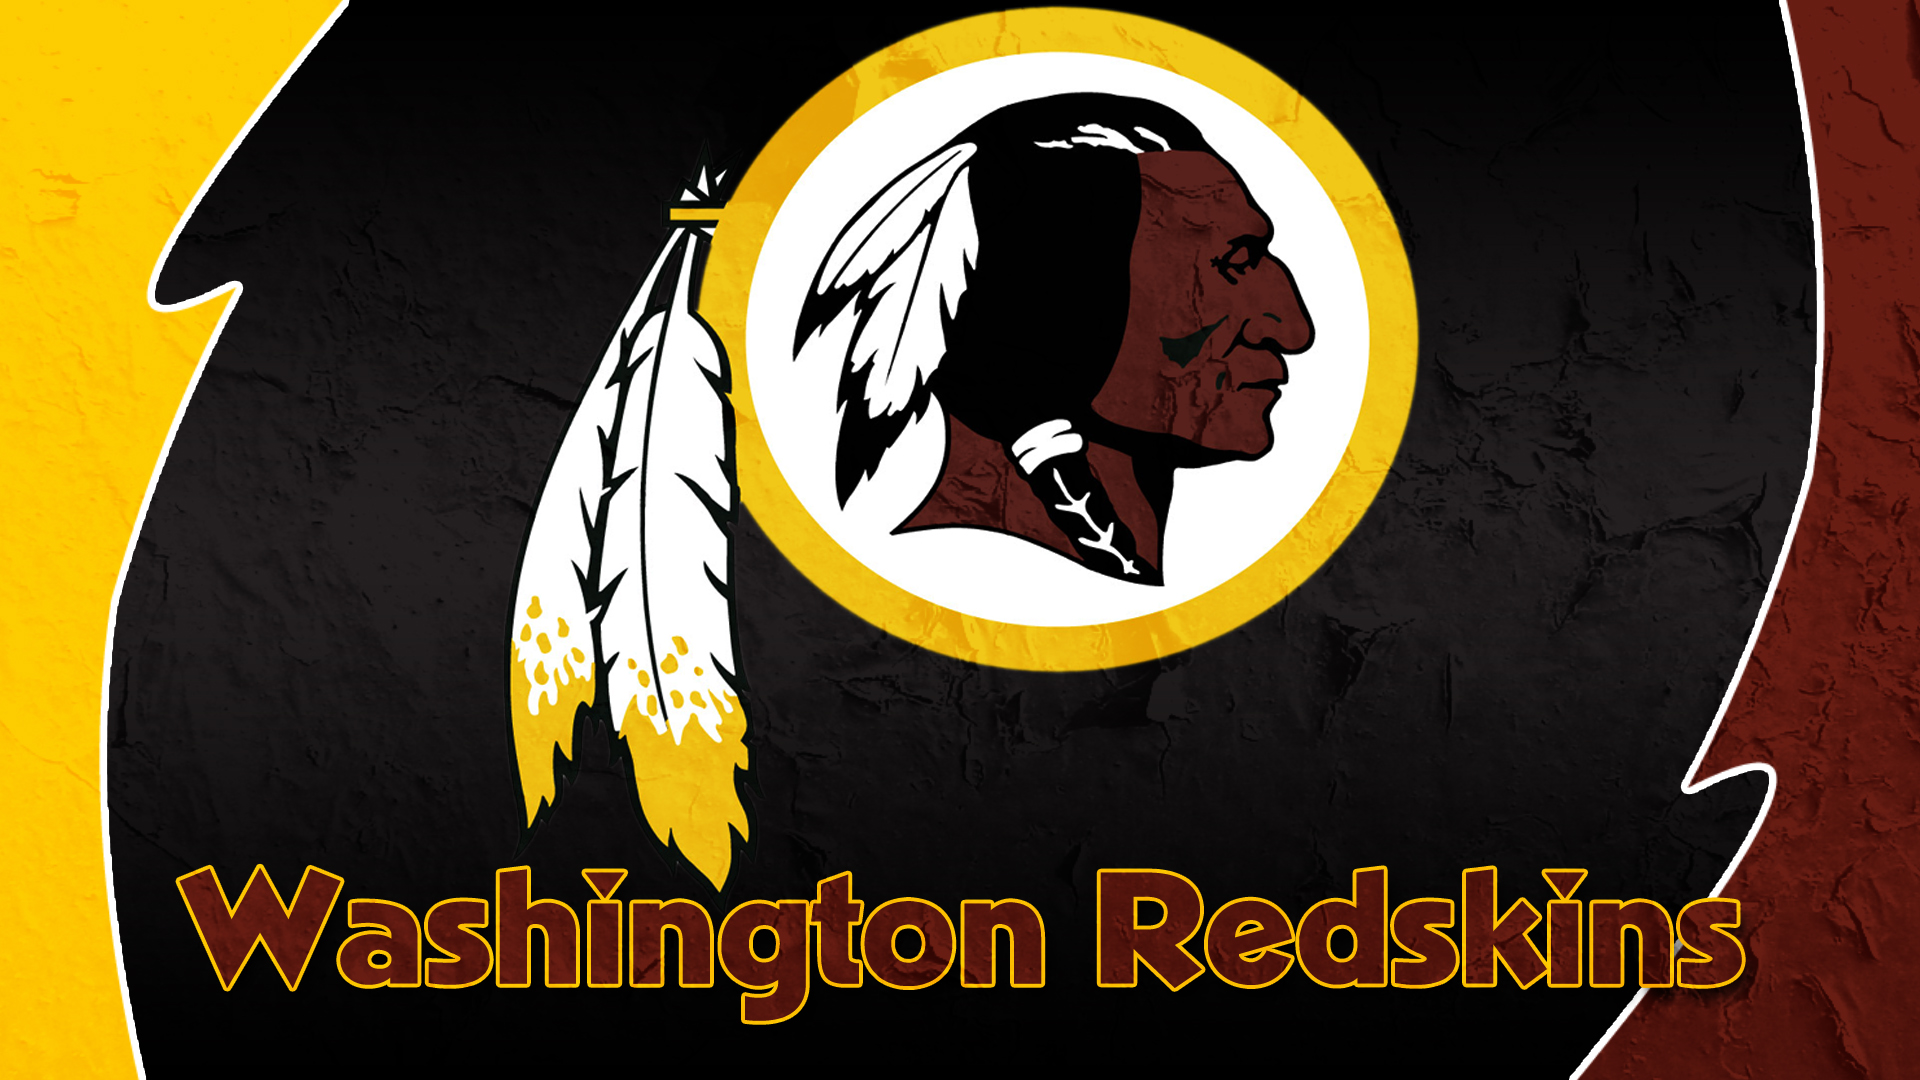 Washington Redskins wallpaper   1113081 ovMDH1Jc